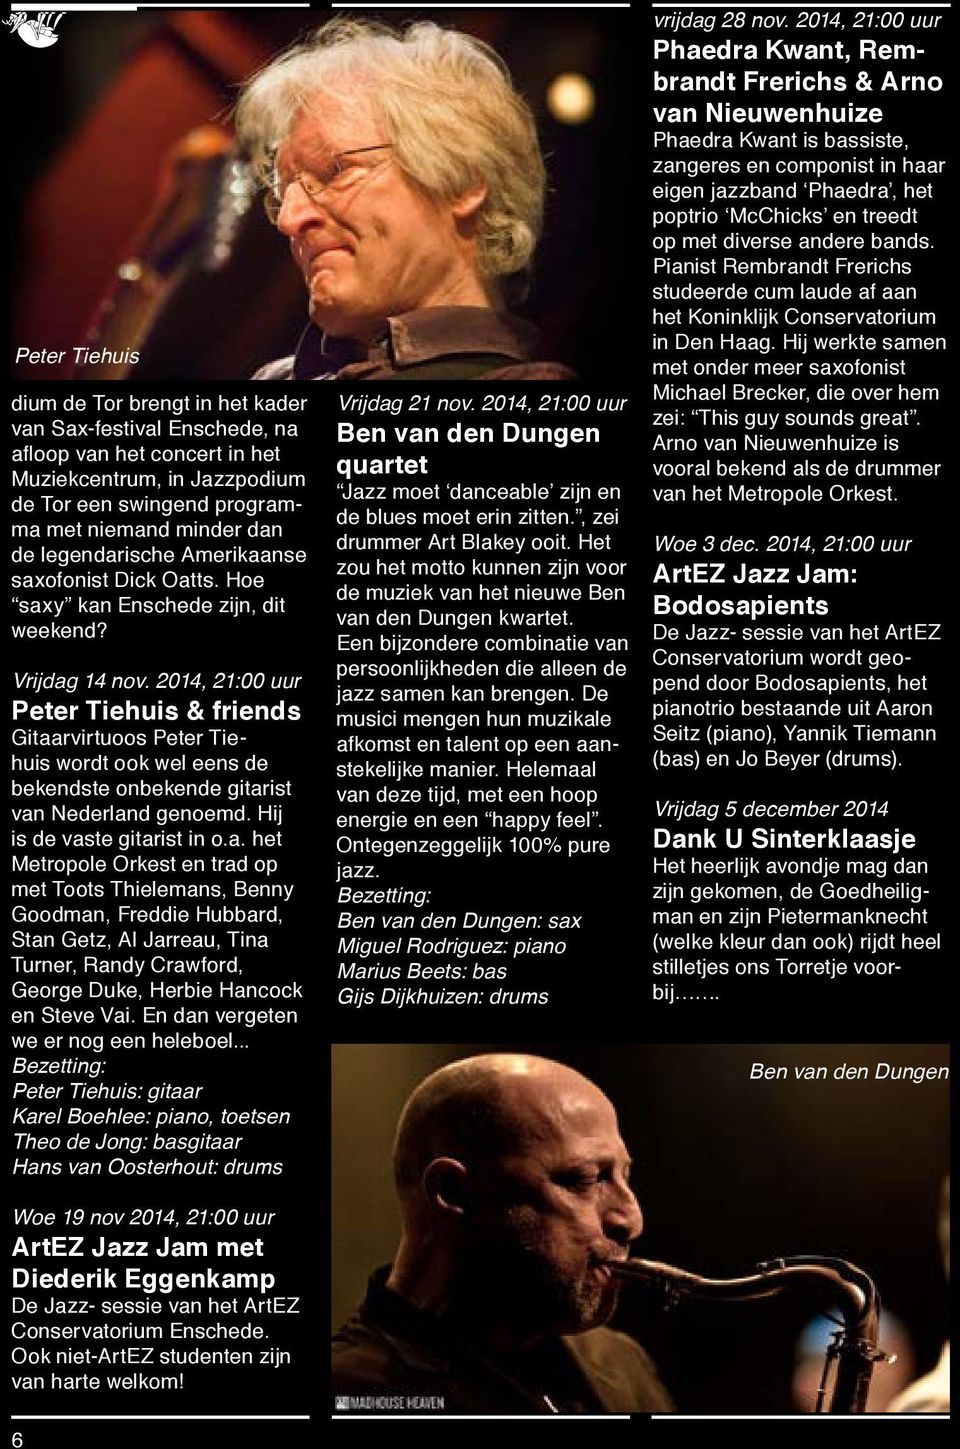 2014, 21:00 uur Peter Tiehuis & friends Gitaa